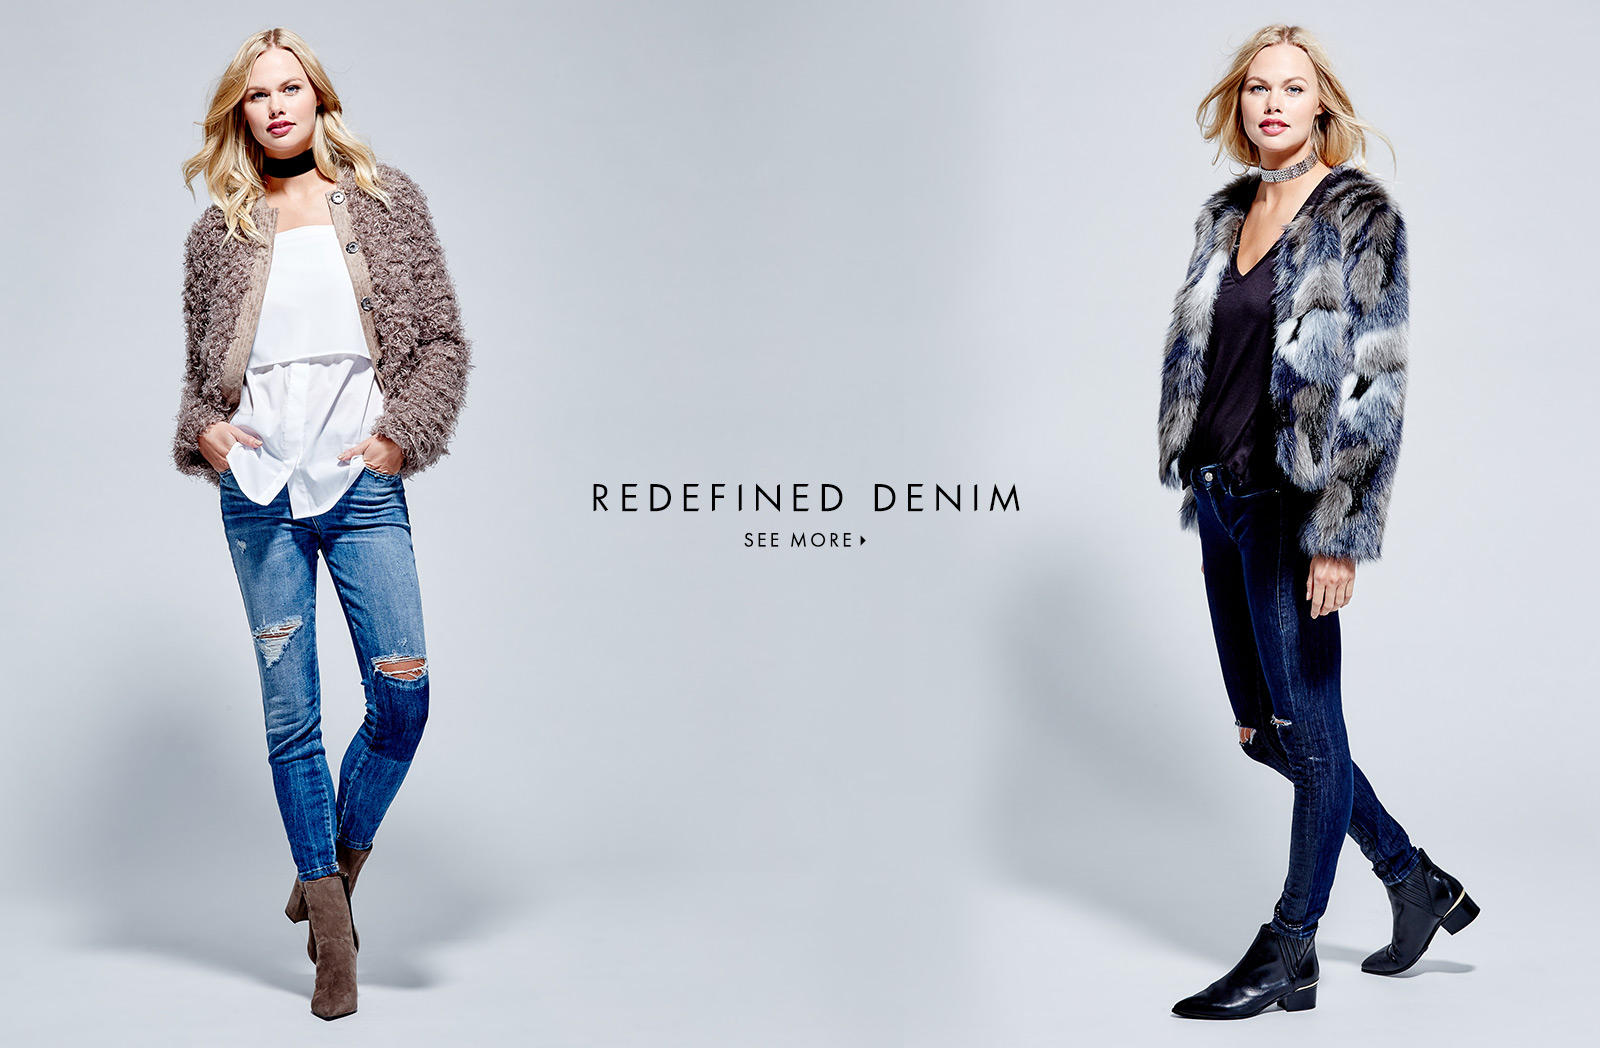 SHOP THE DENIM COLLECTION